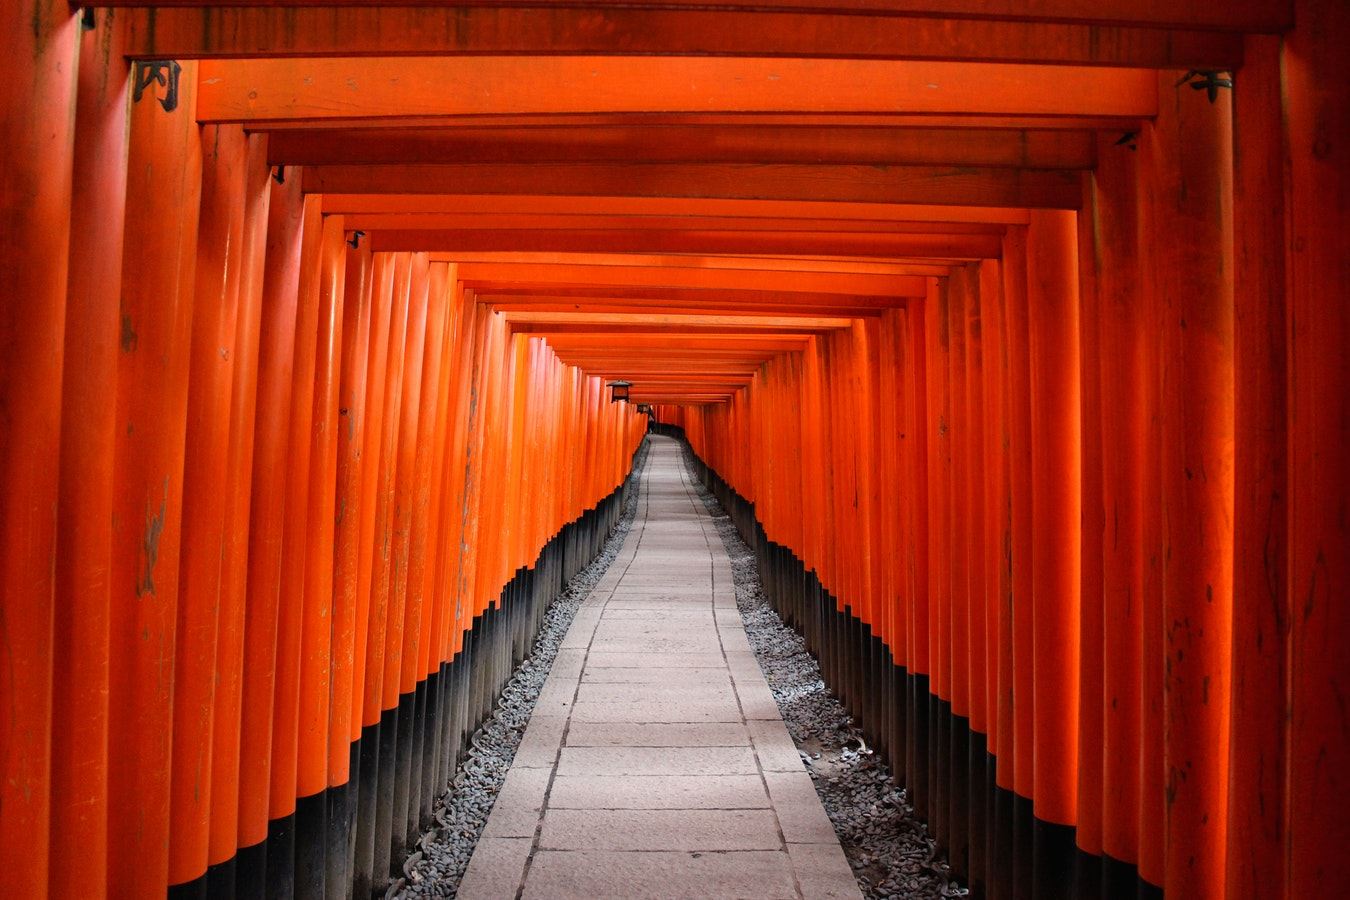 A long tunnel of orange posts, with black bases